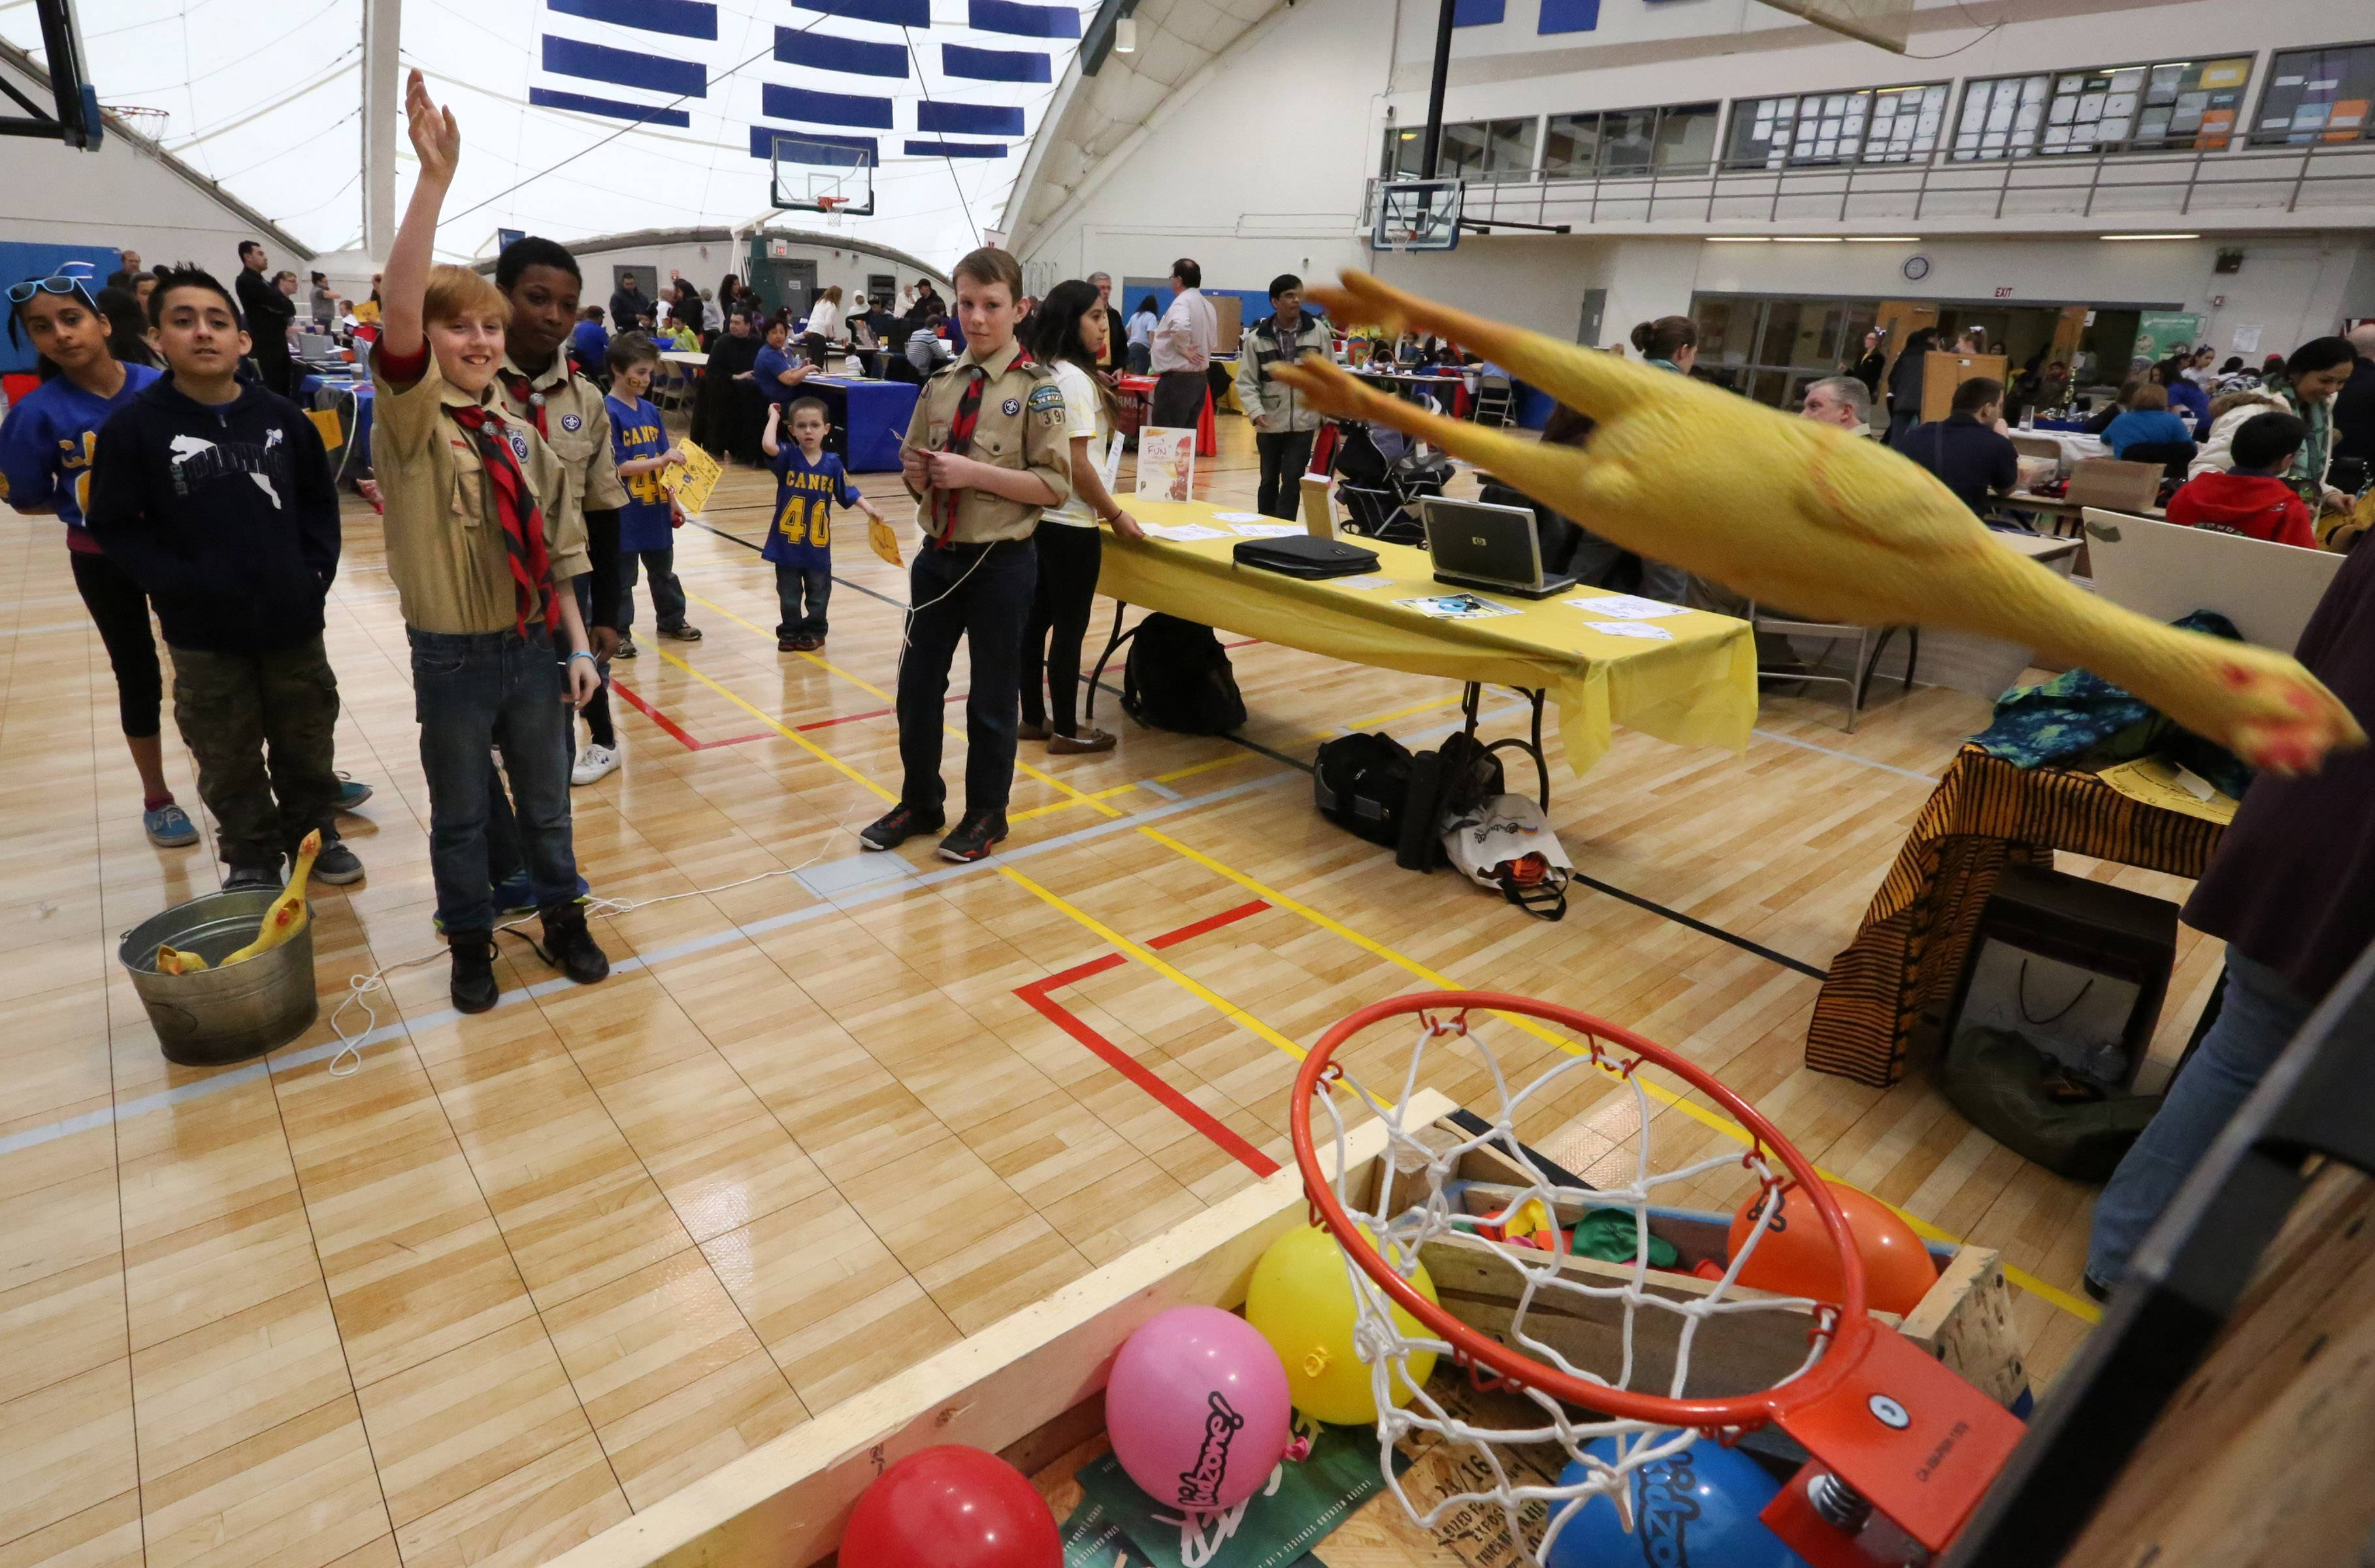 Shawn Prigge, 11, of Hanover Park, with Boy Scouts Troop 398, tosses a rubber chicken towards a basketball hoop at the Kids at Hope Community Resource Fair at Hanover Park's Community Center Gym on Saturday.